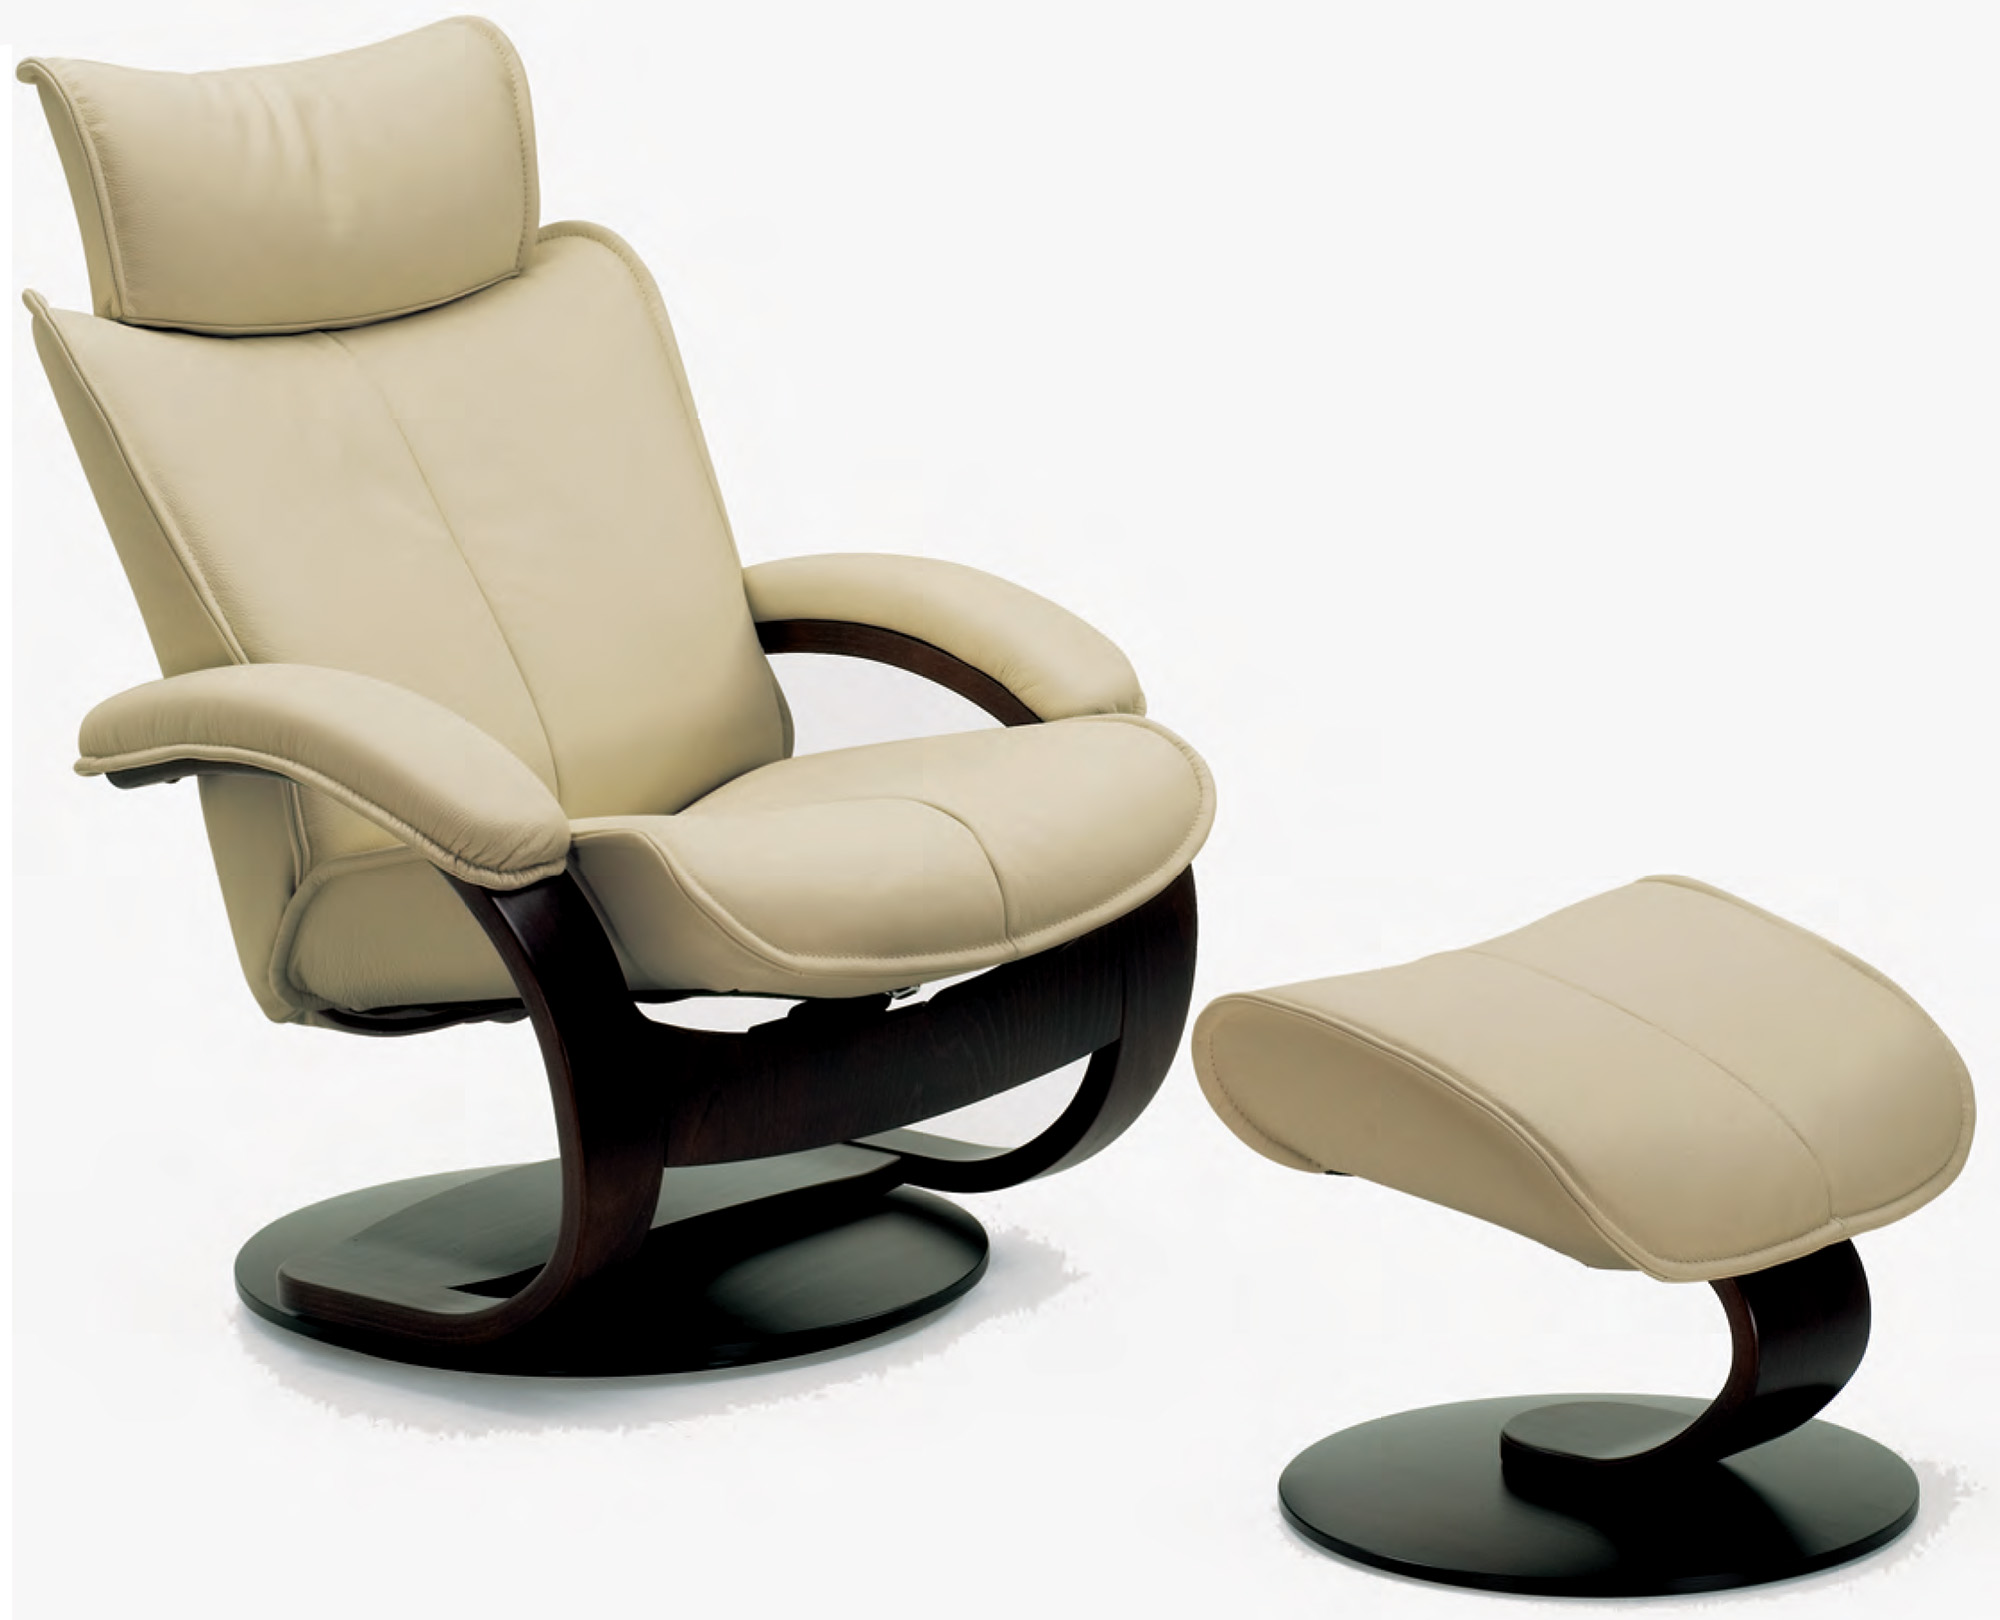 ergonomic chair and ottoman covers wedding gold fjords ona leather recliner 43